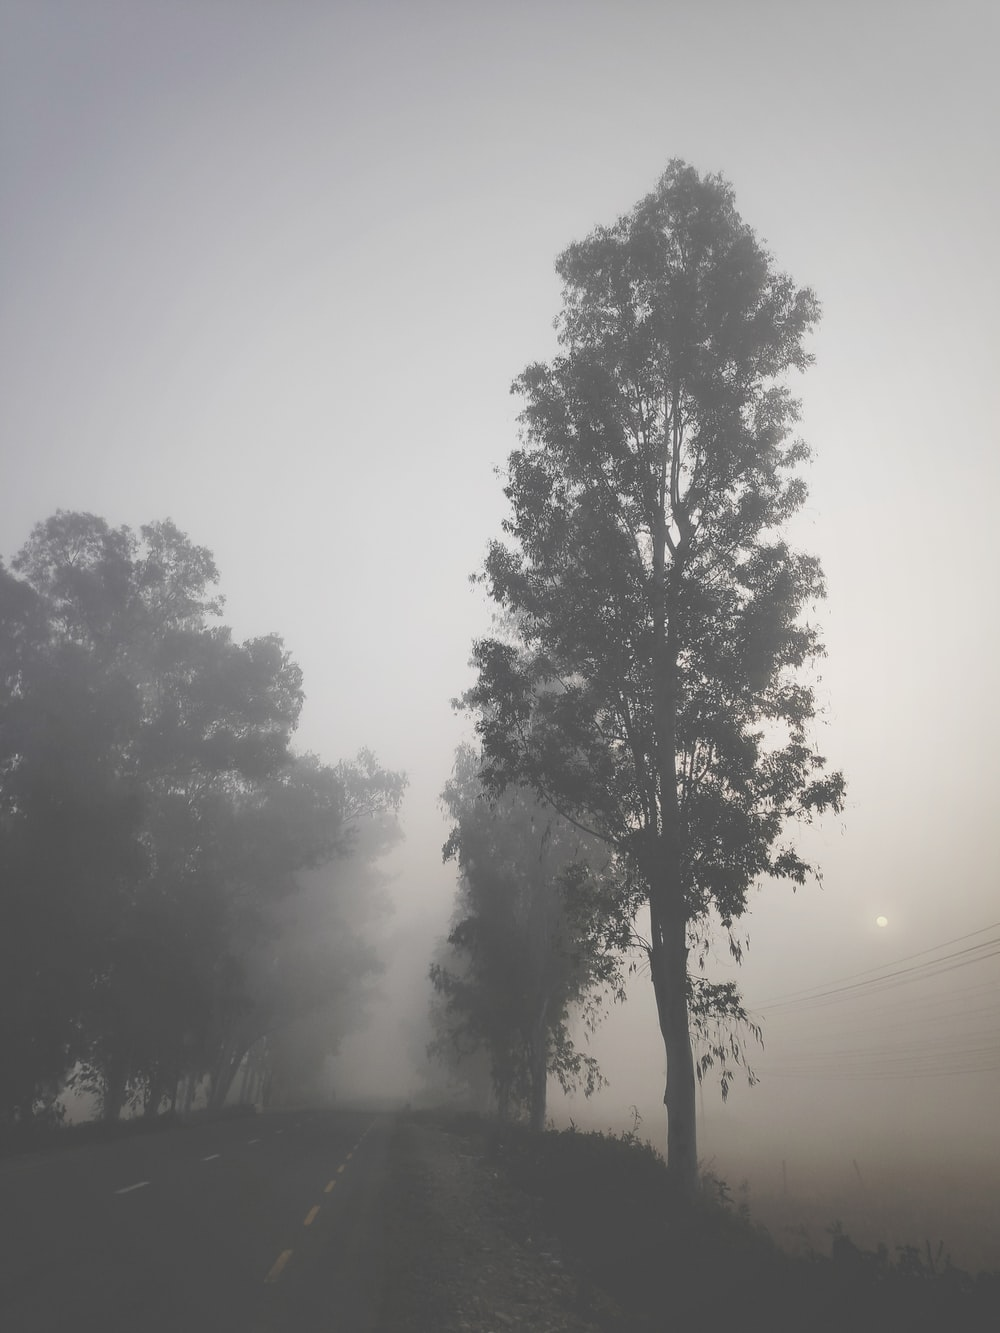 grayscale photography of trees in foggy day